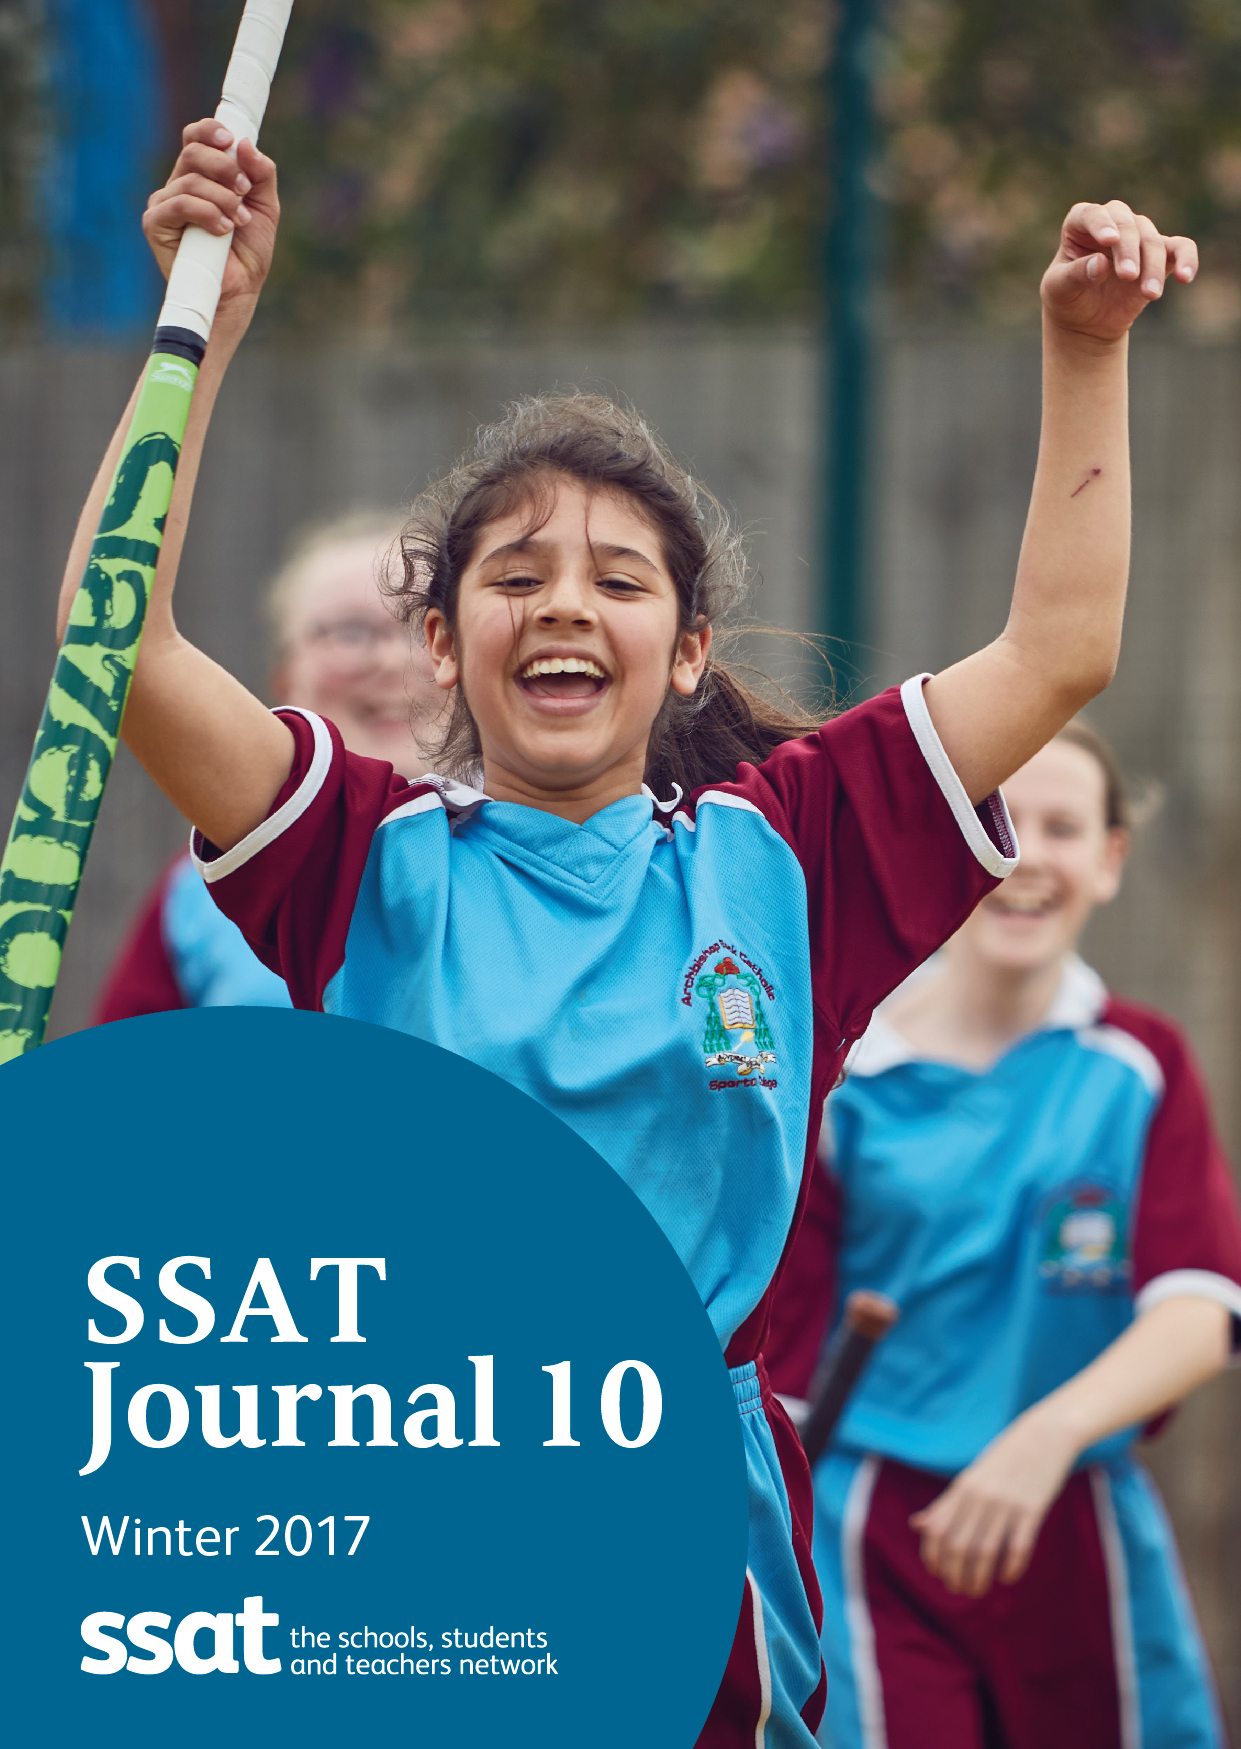 SSAT Journal 10 Winter 2017